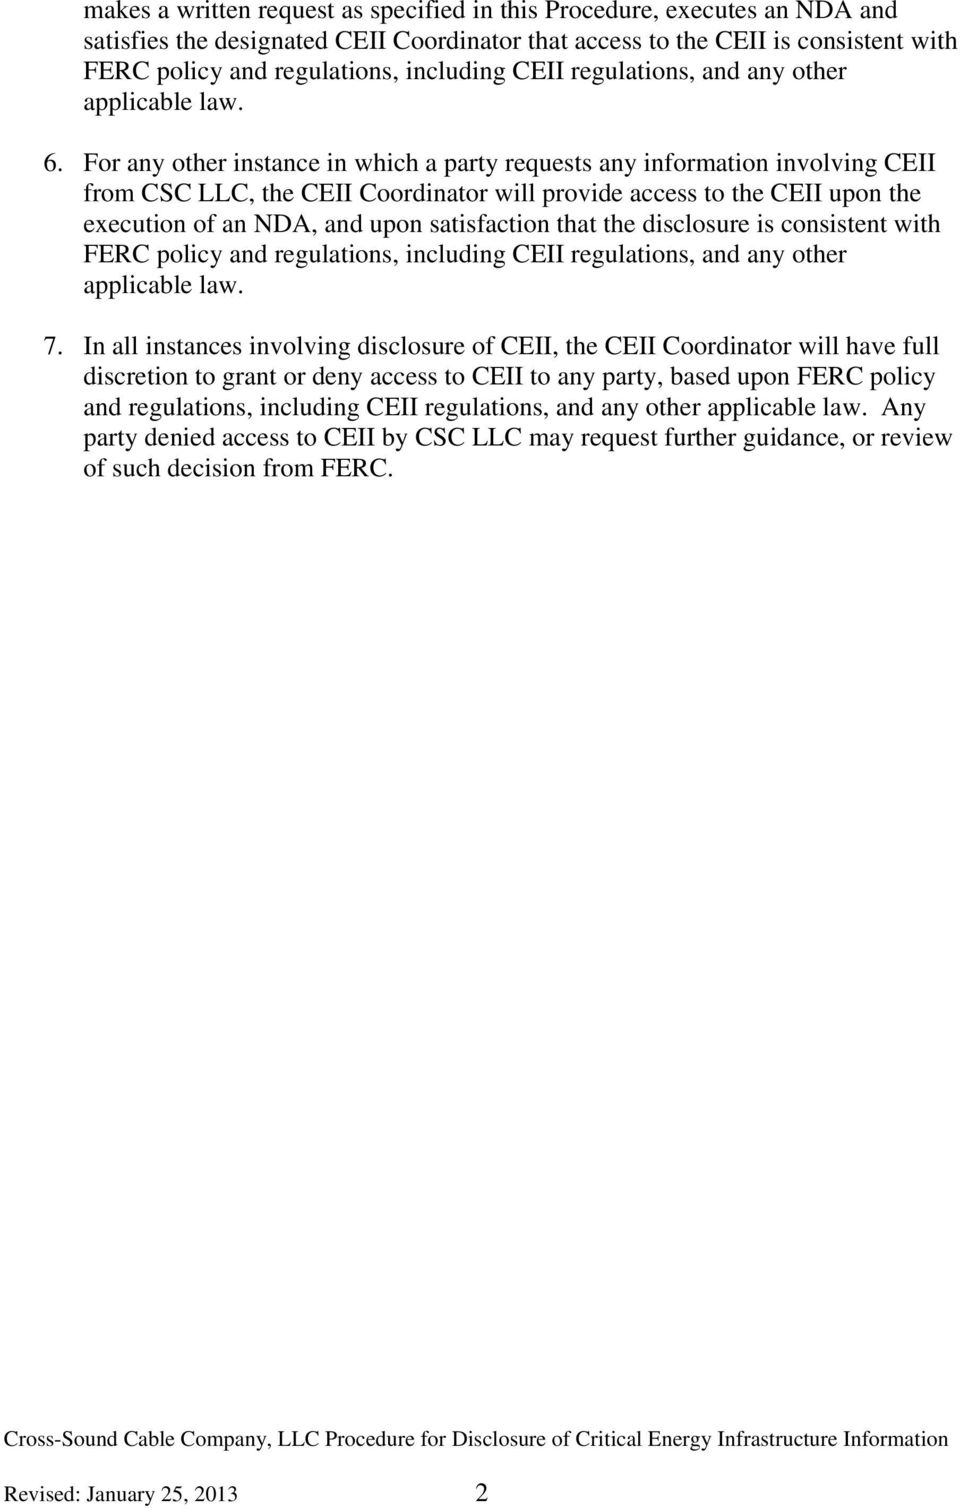 For any other instance in which a party requests any information involving CEII from CSC LLC, the CEII Coordinator will provide access to the CEII upon the execution of an NDA, and upon satisfaction